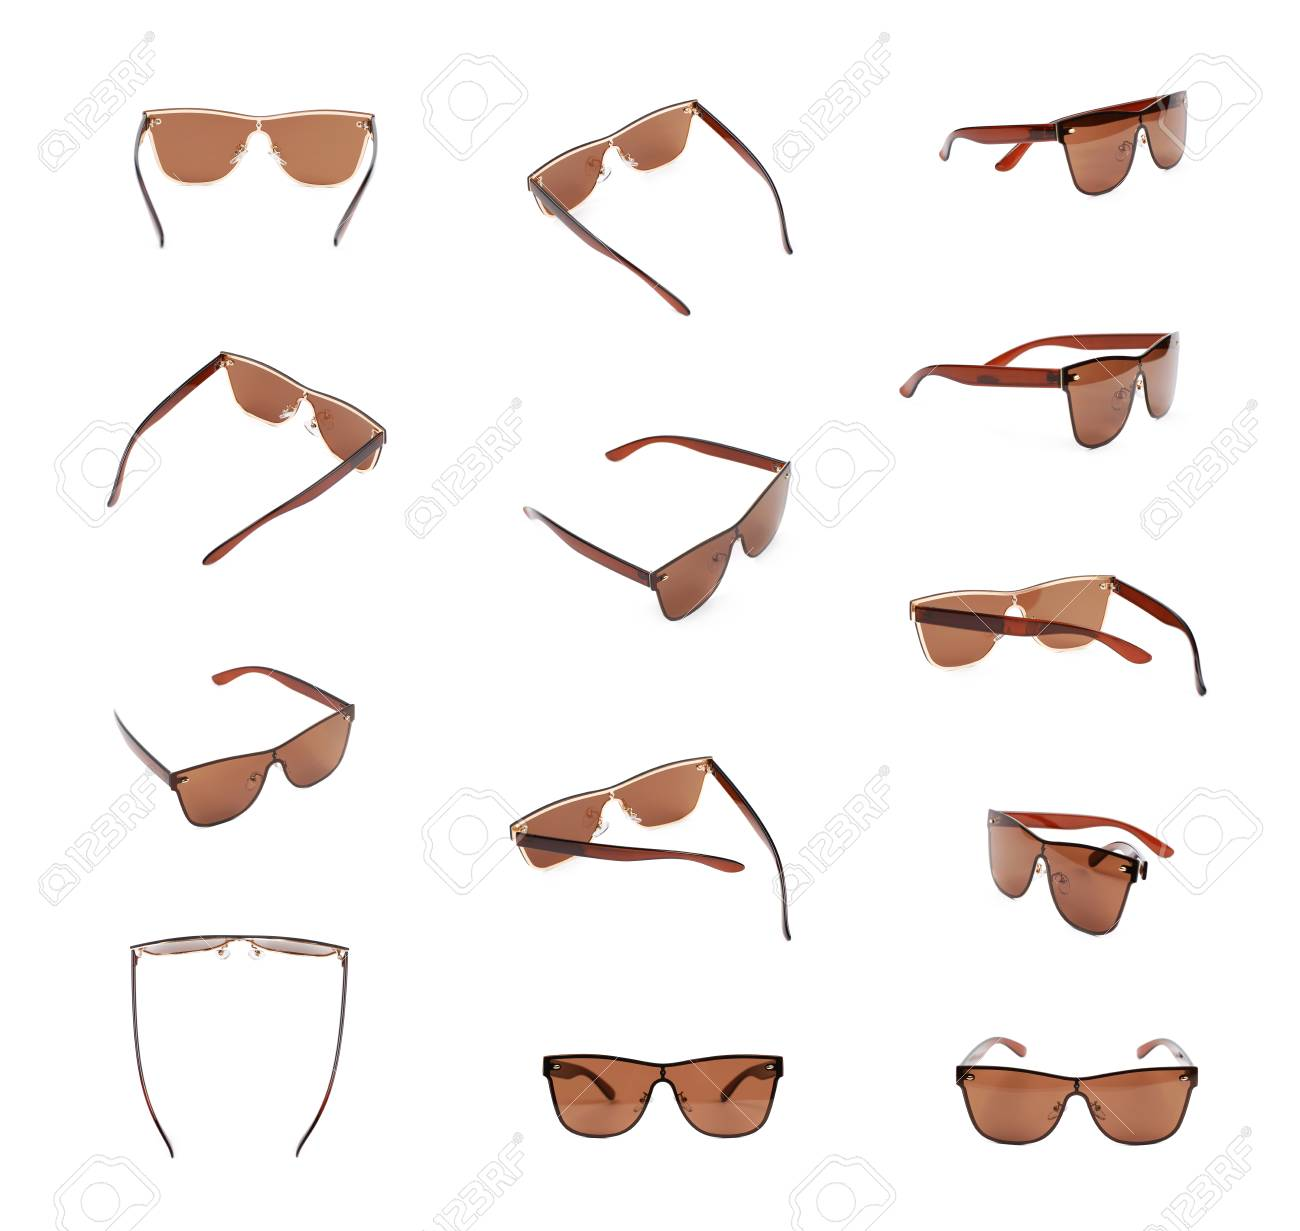 011dc15fe52 Pair Of Brown Shade Sunglasses Isolated Over The White Background ...